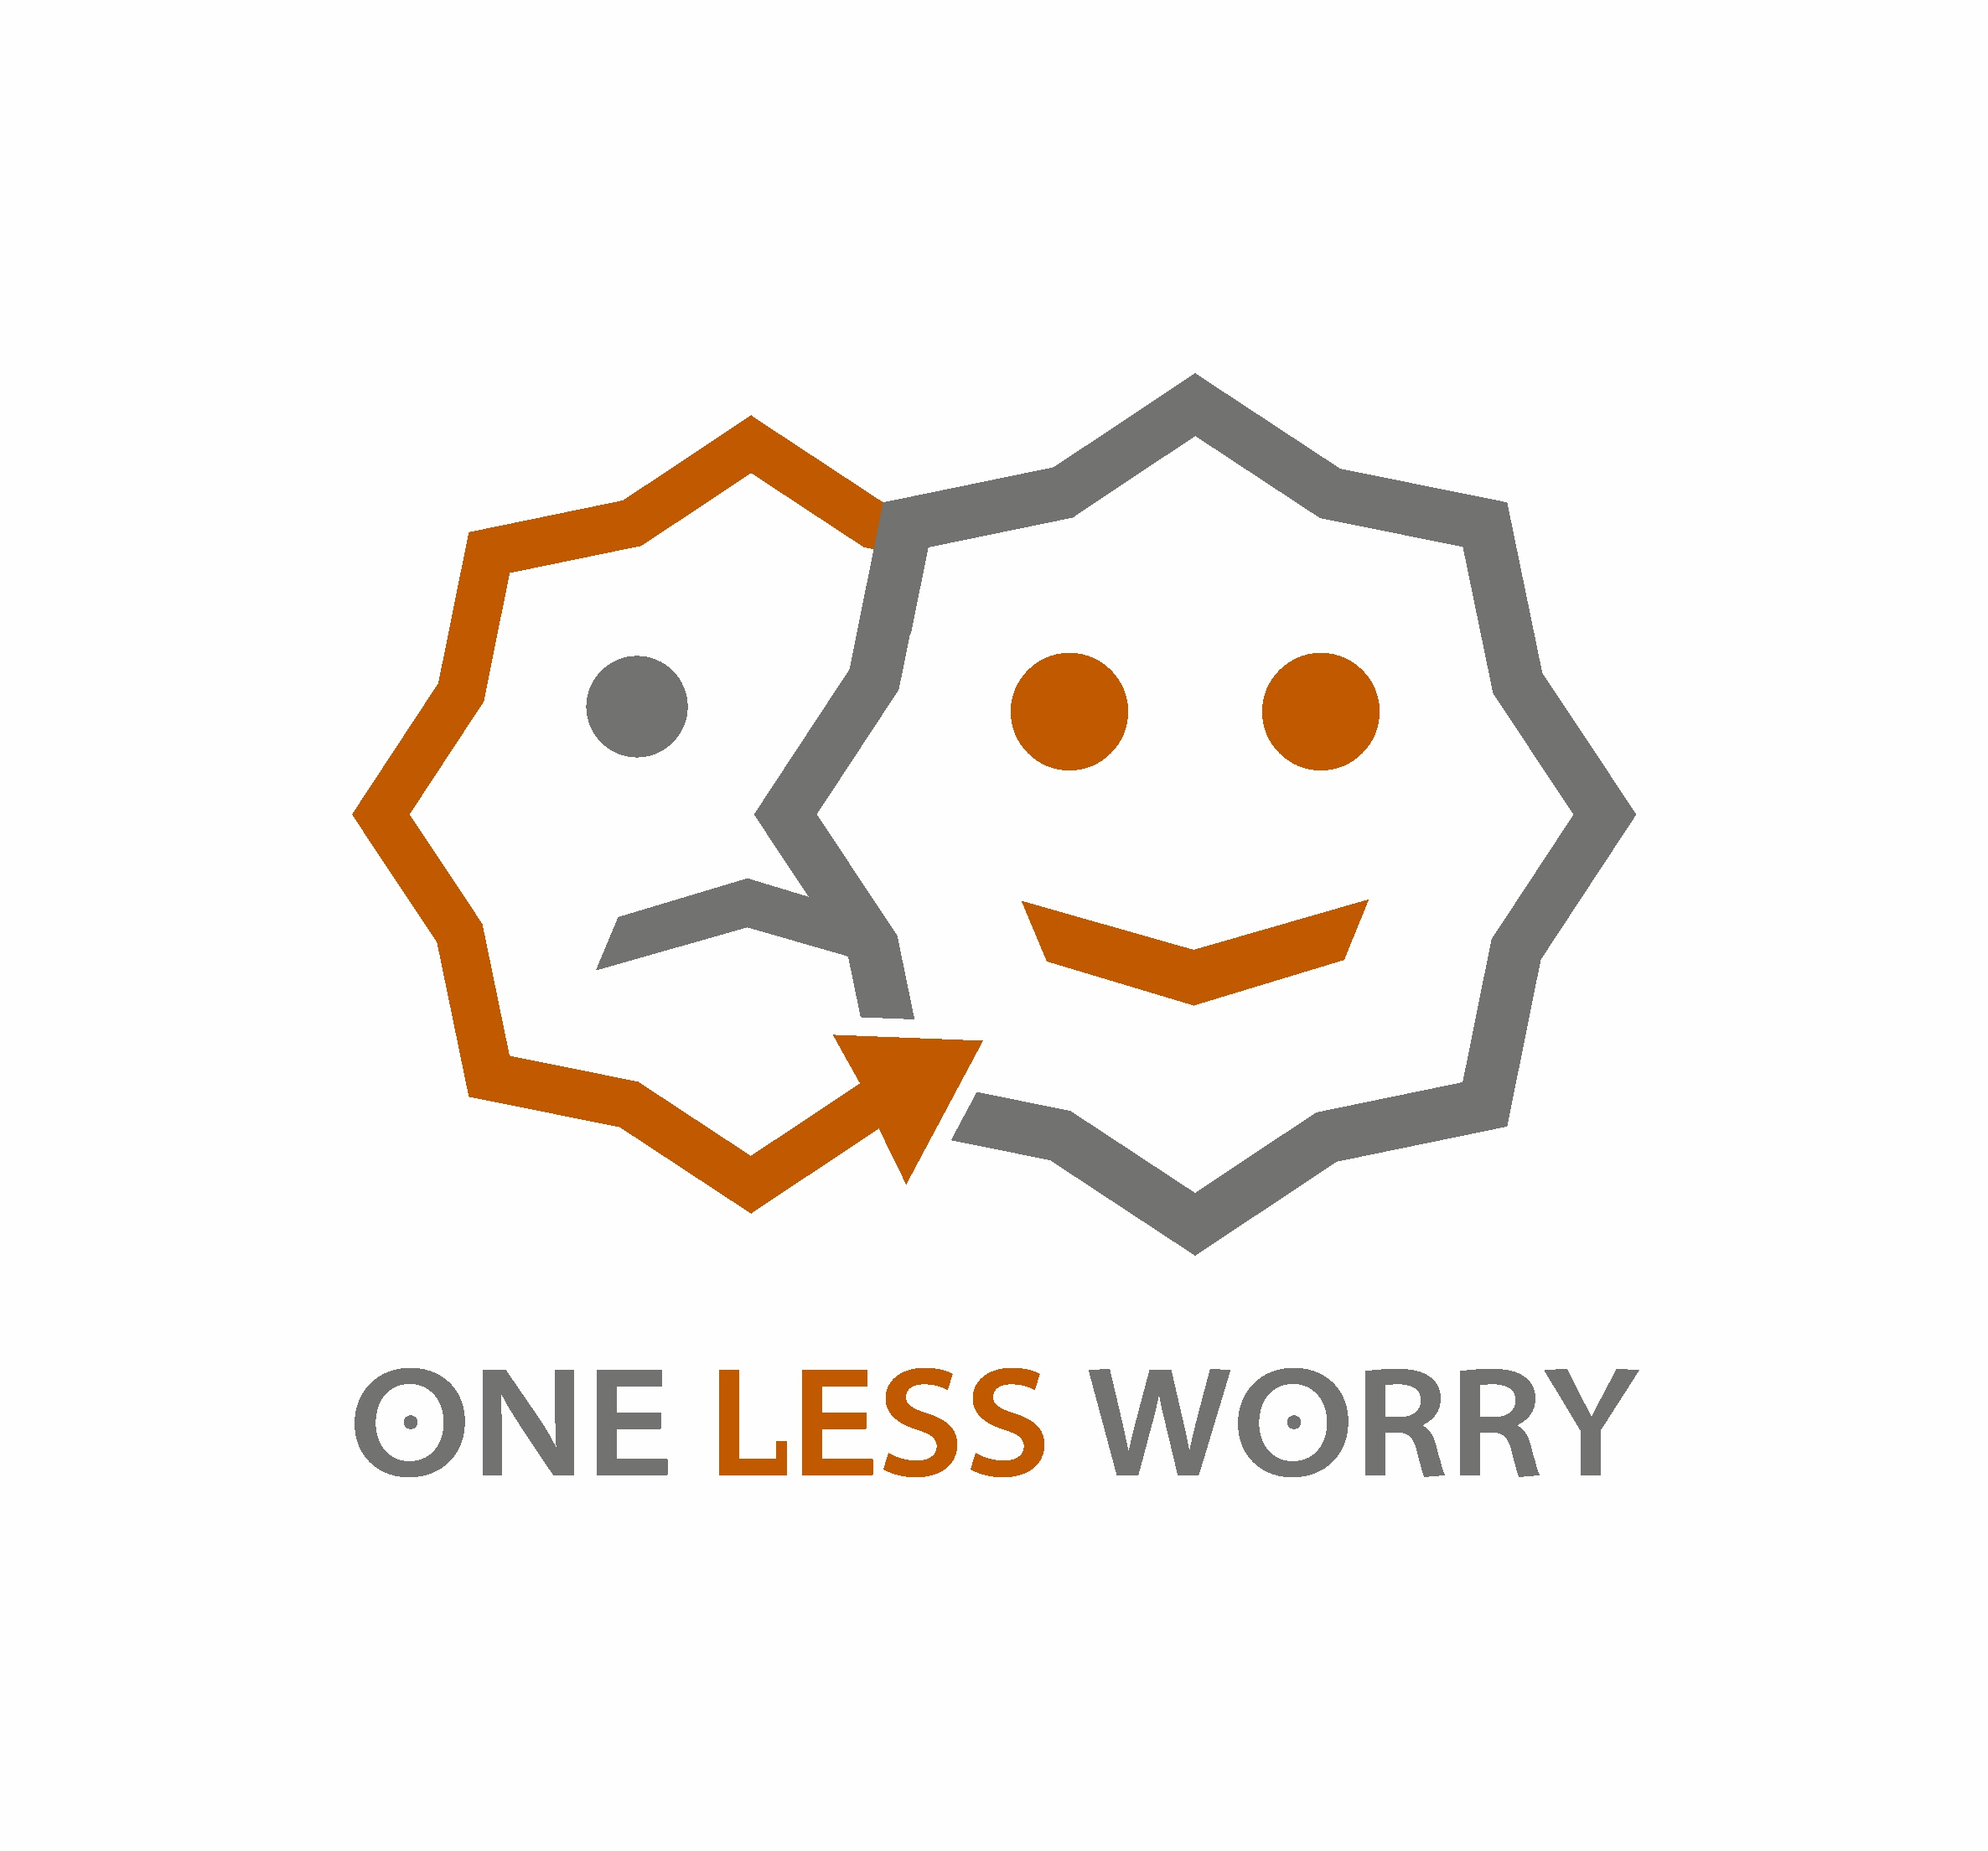 Logo Design by Amit Kaushik - Entry No. 11 in the Logo Design Contest Creative Logo Design for FS - One Less Worry.